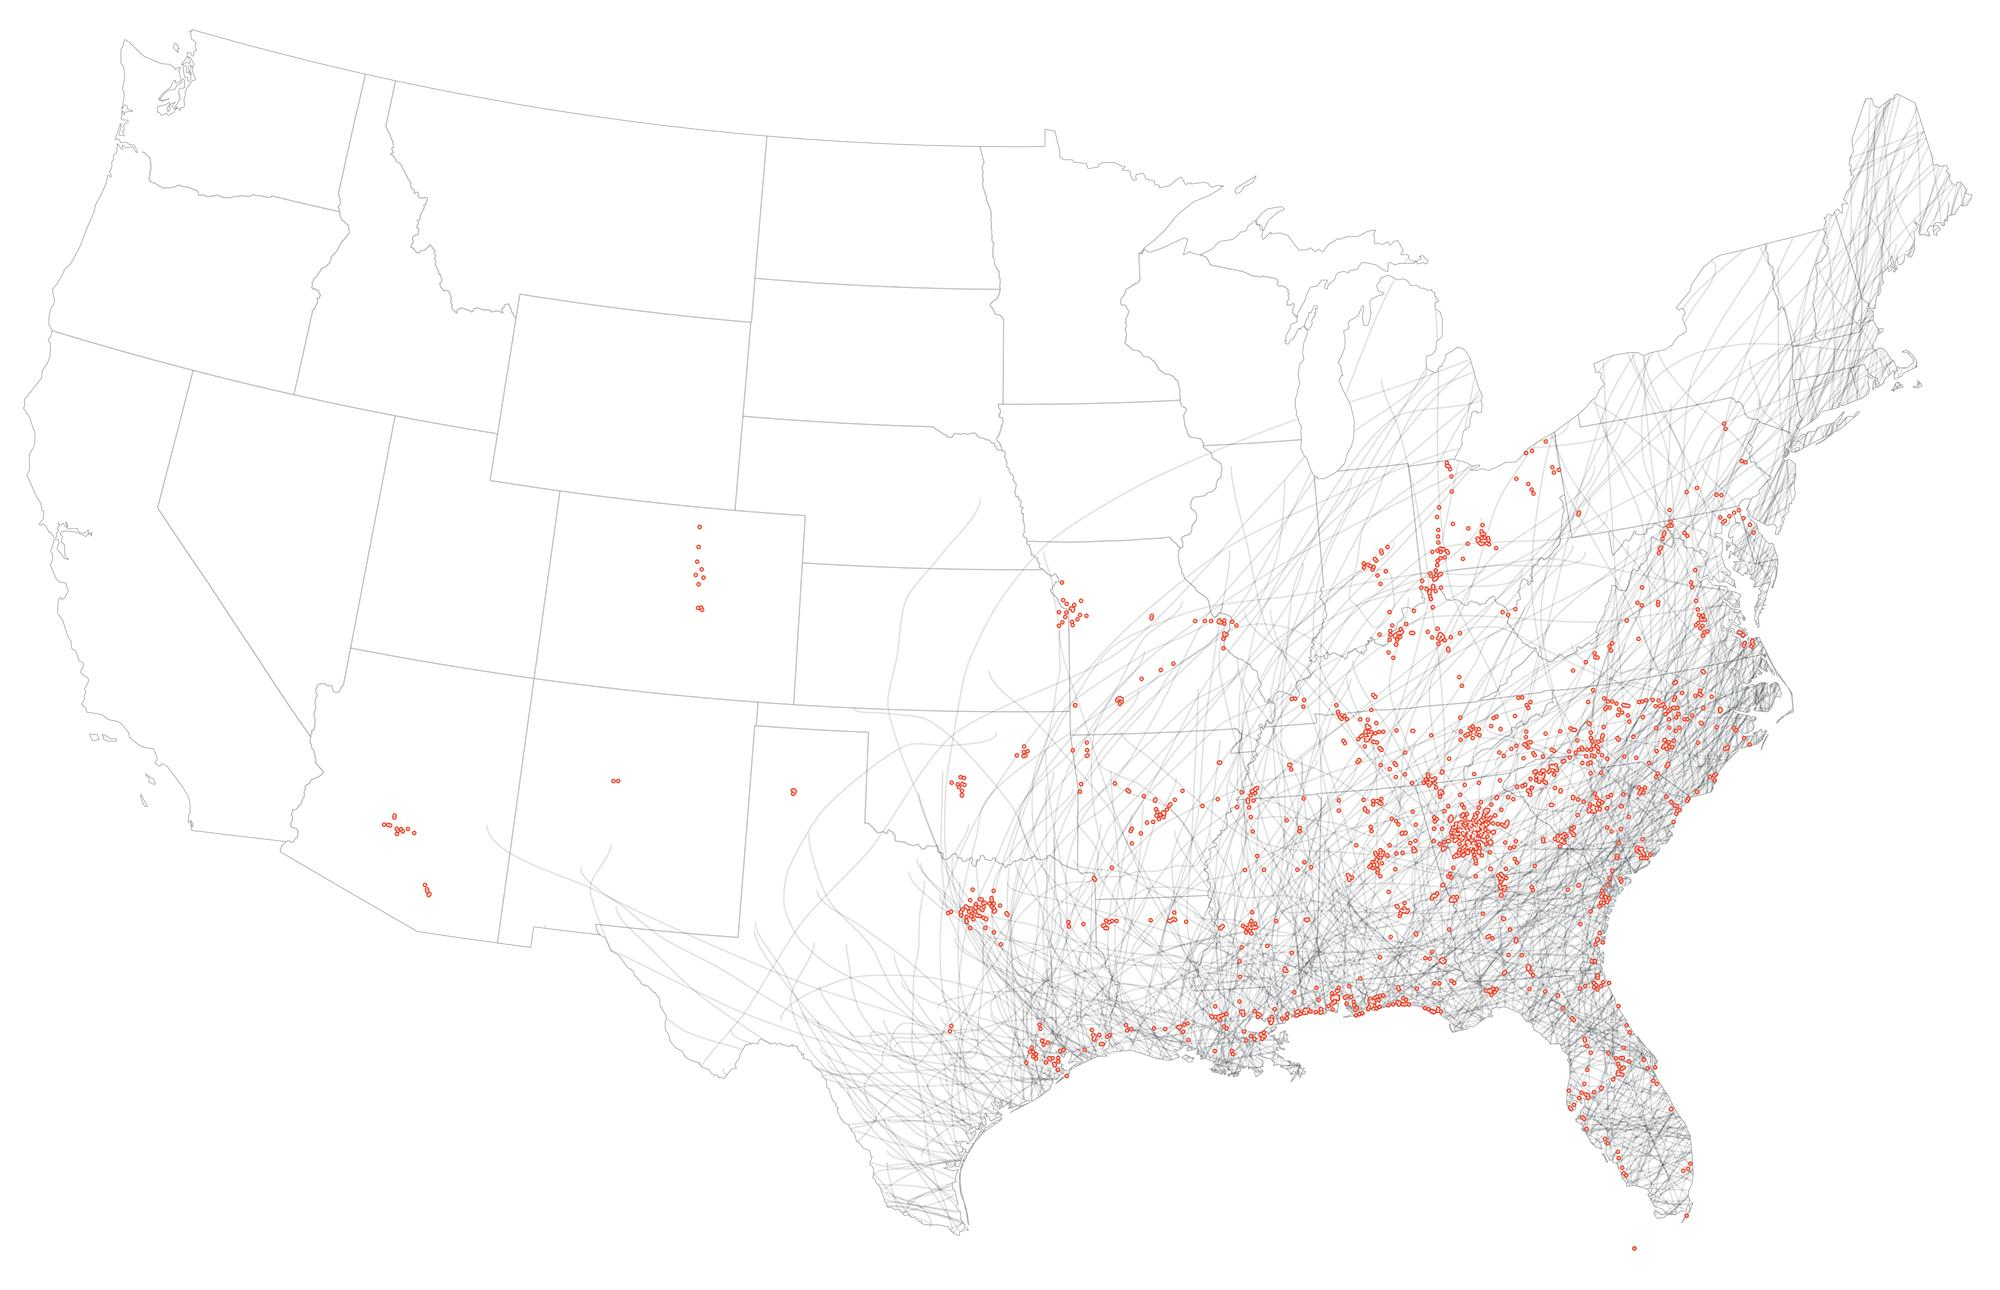 Maps That Explain Food In America Voxcom - Density map of waffle house in us